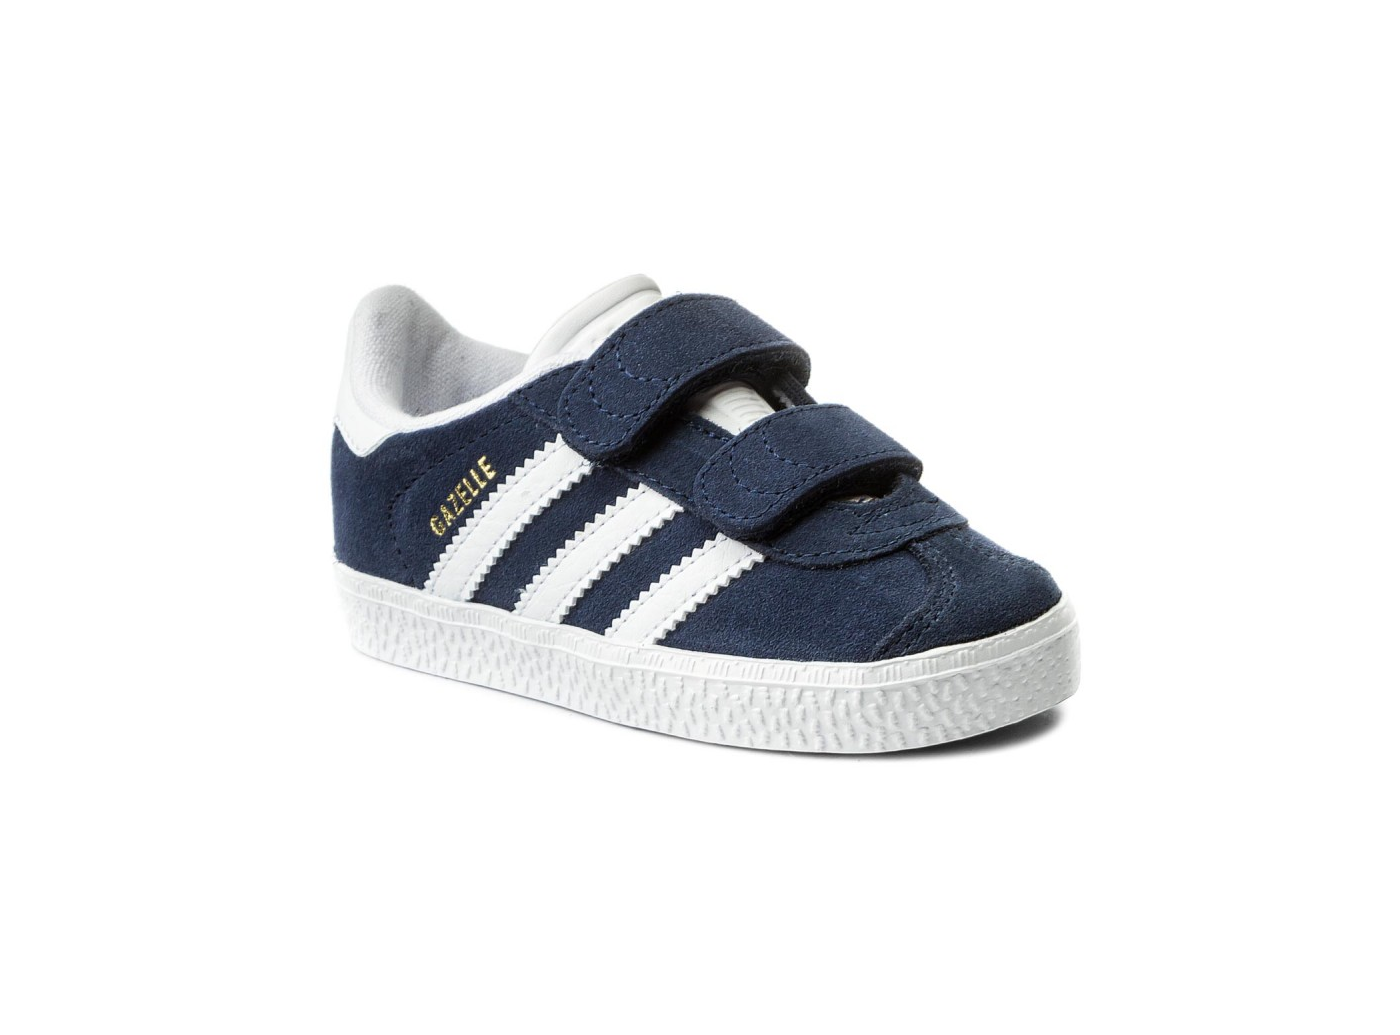 adidas gazelle taille 22 Off 51% - www.bashhguidelines.org